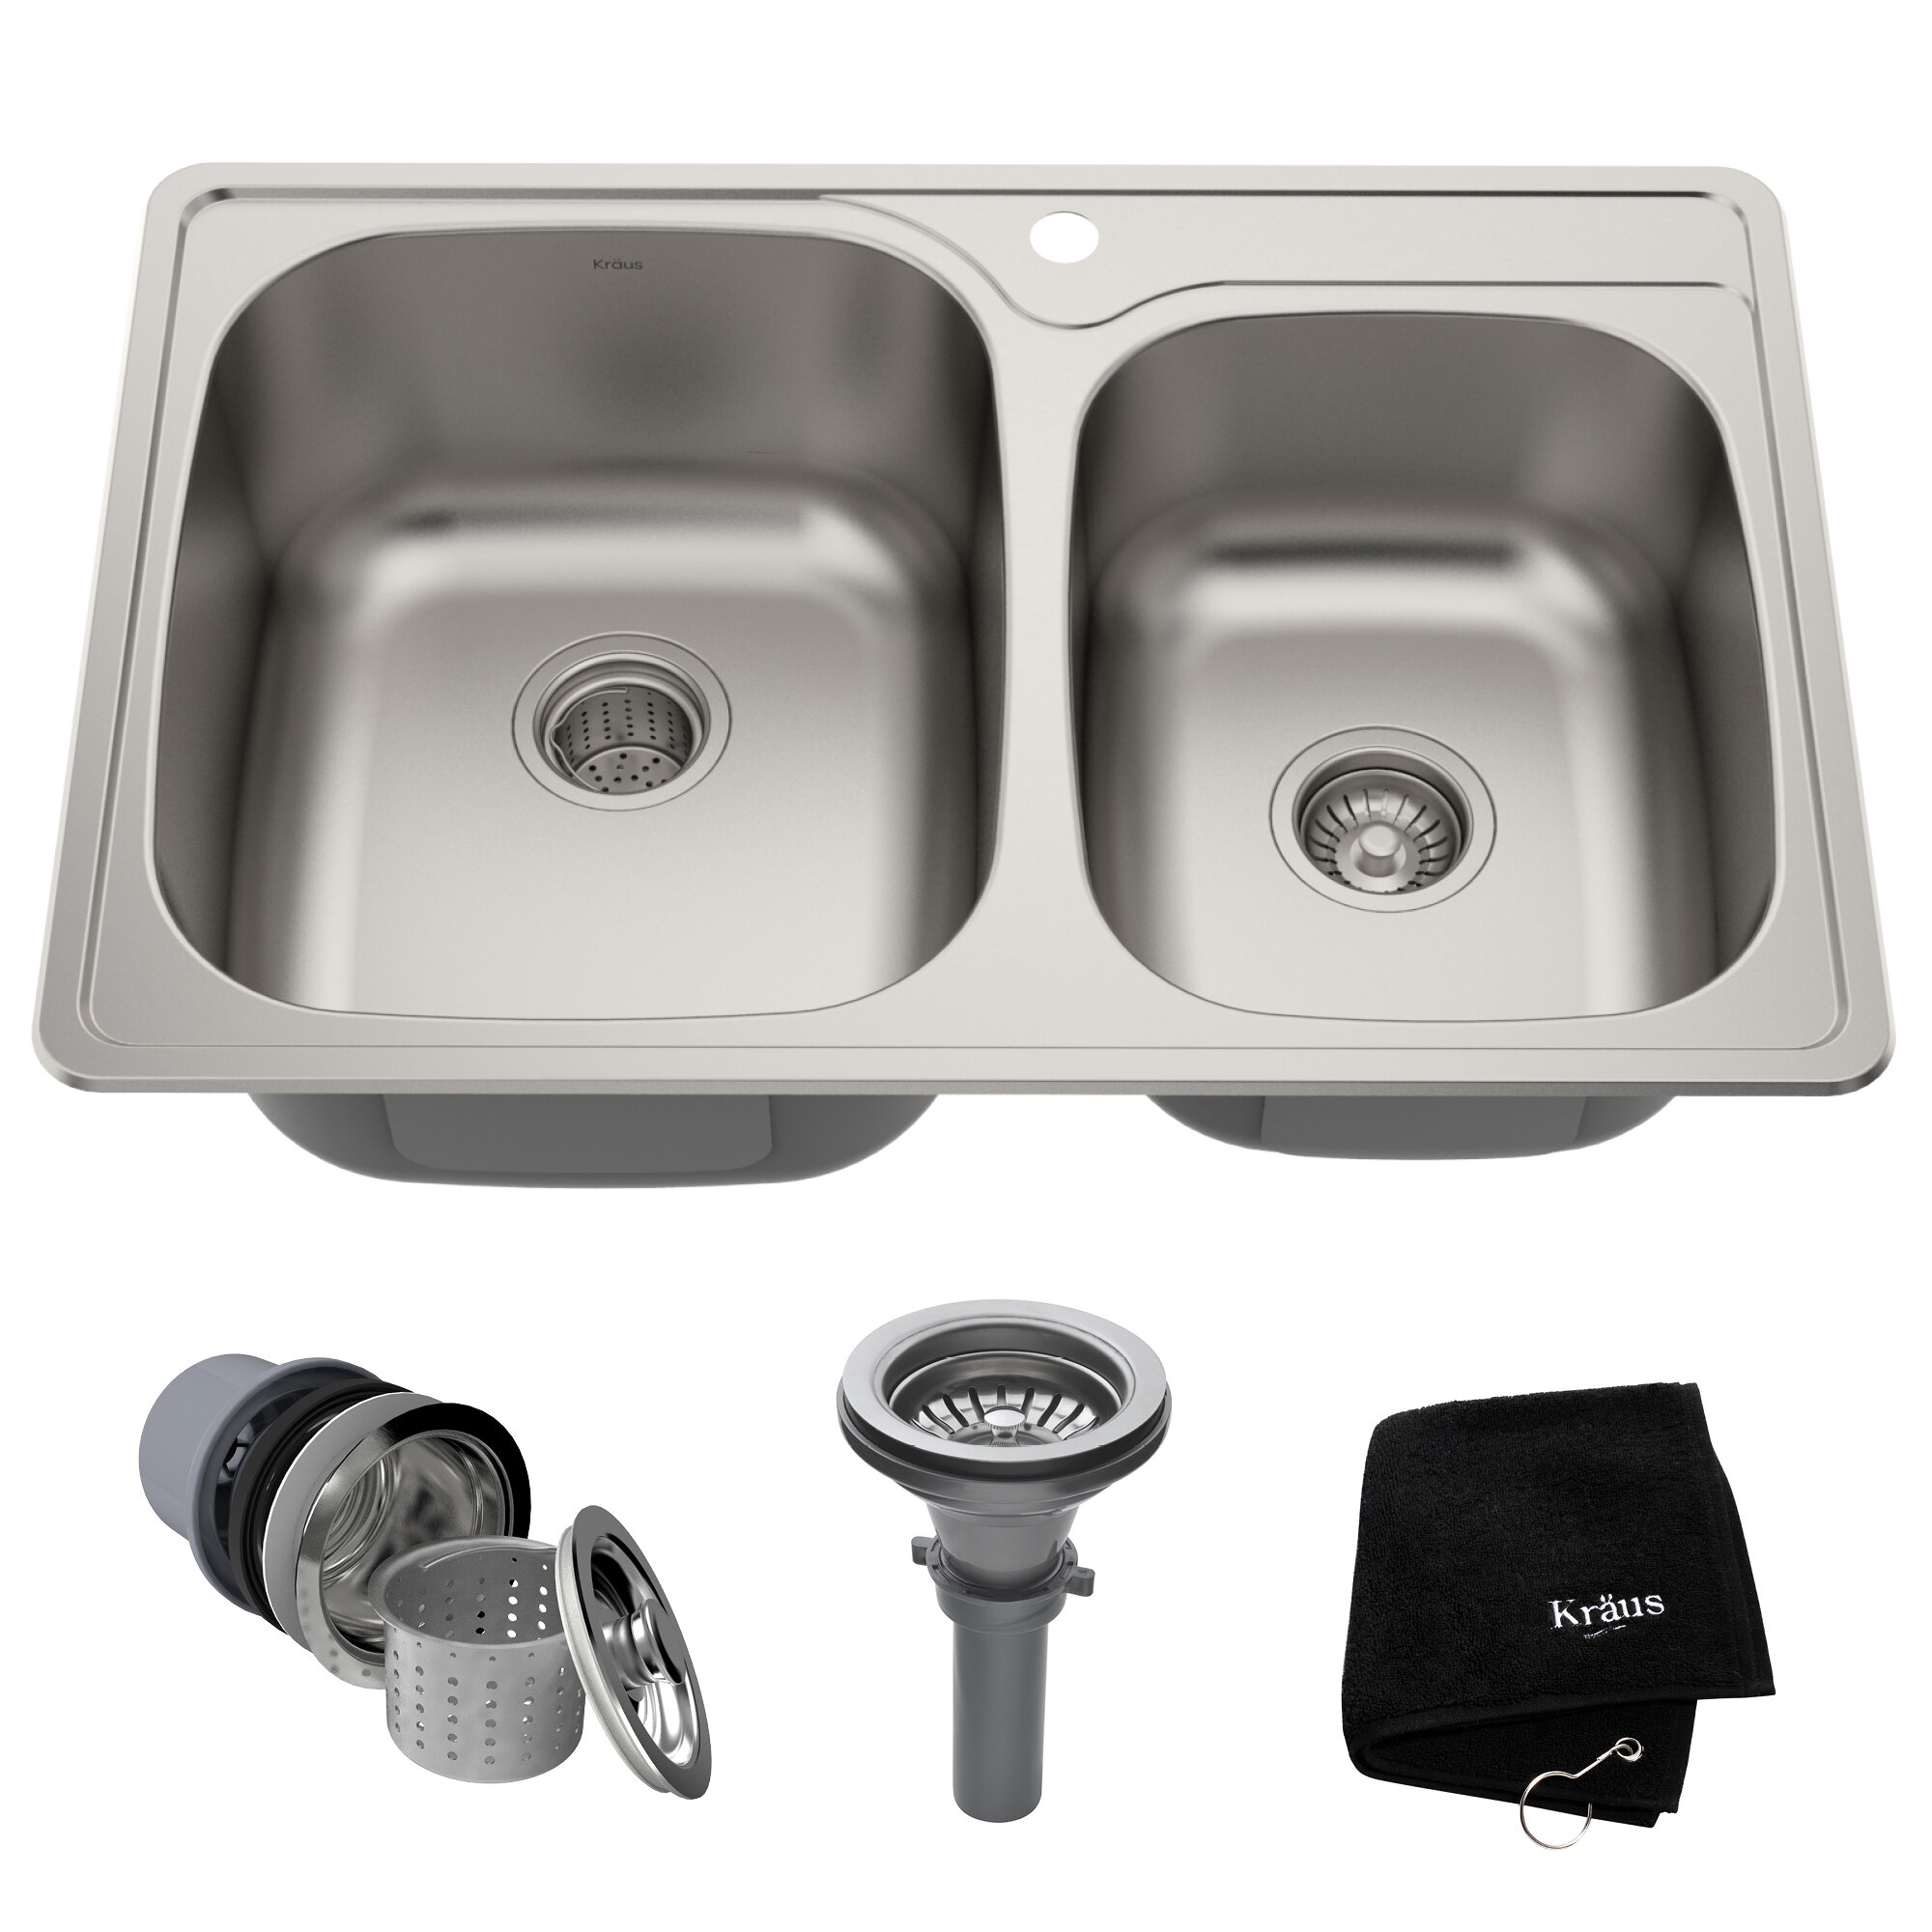 Superb Stainless Steel 33 L X 22 W Double Basin Drop In Kitchen Sink Complete Home Design Collection Lindsey Bellcom